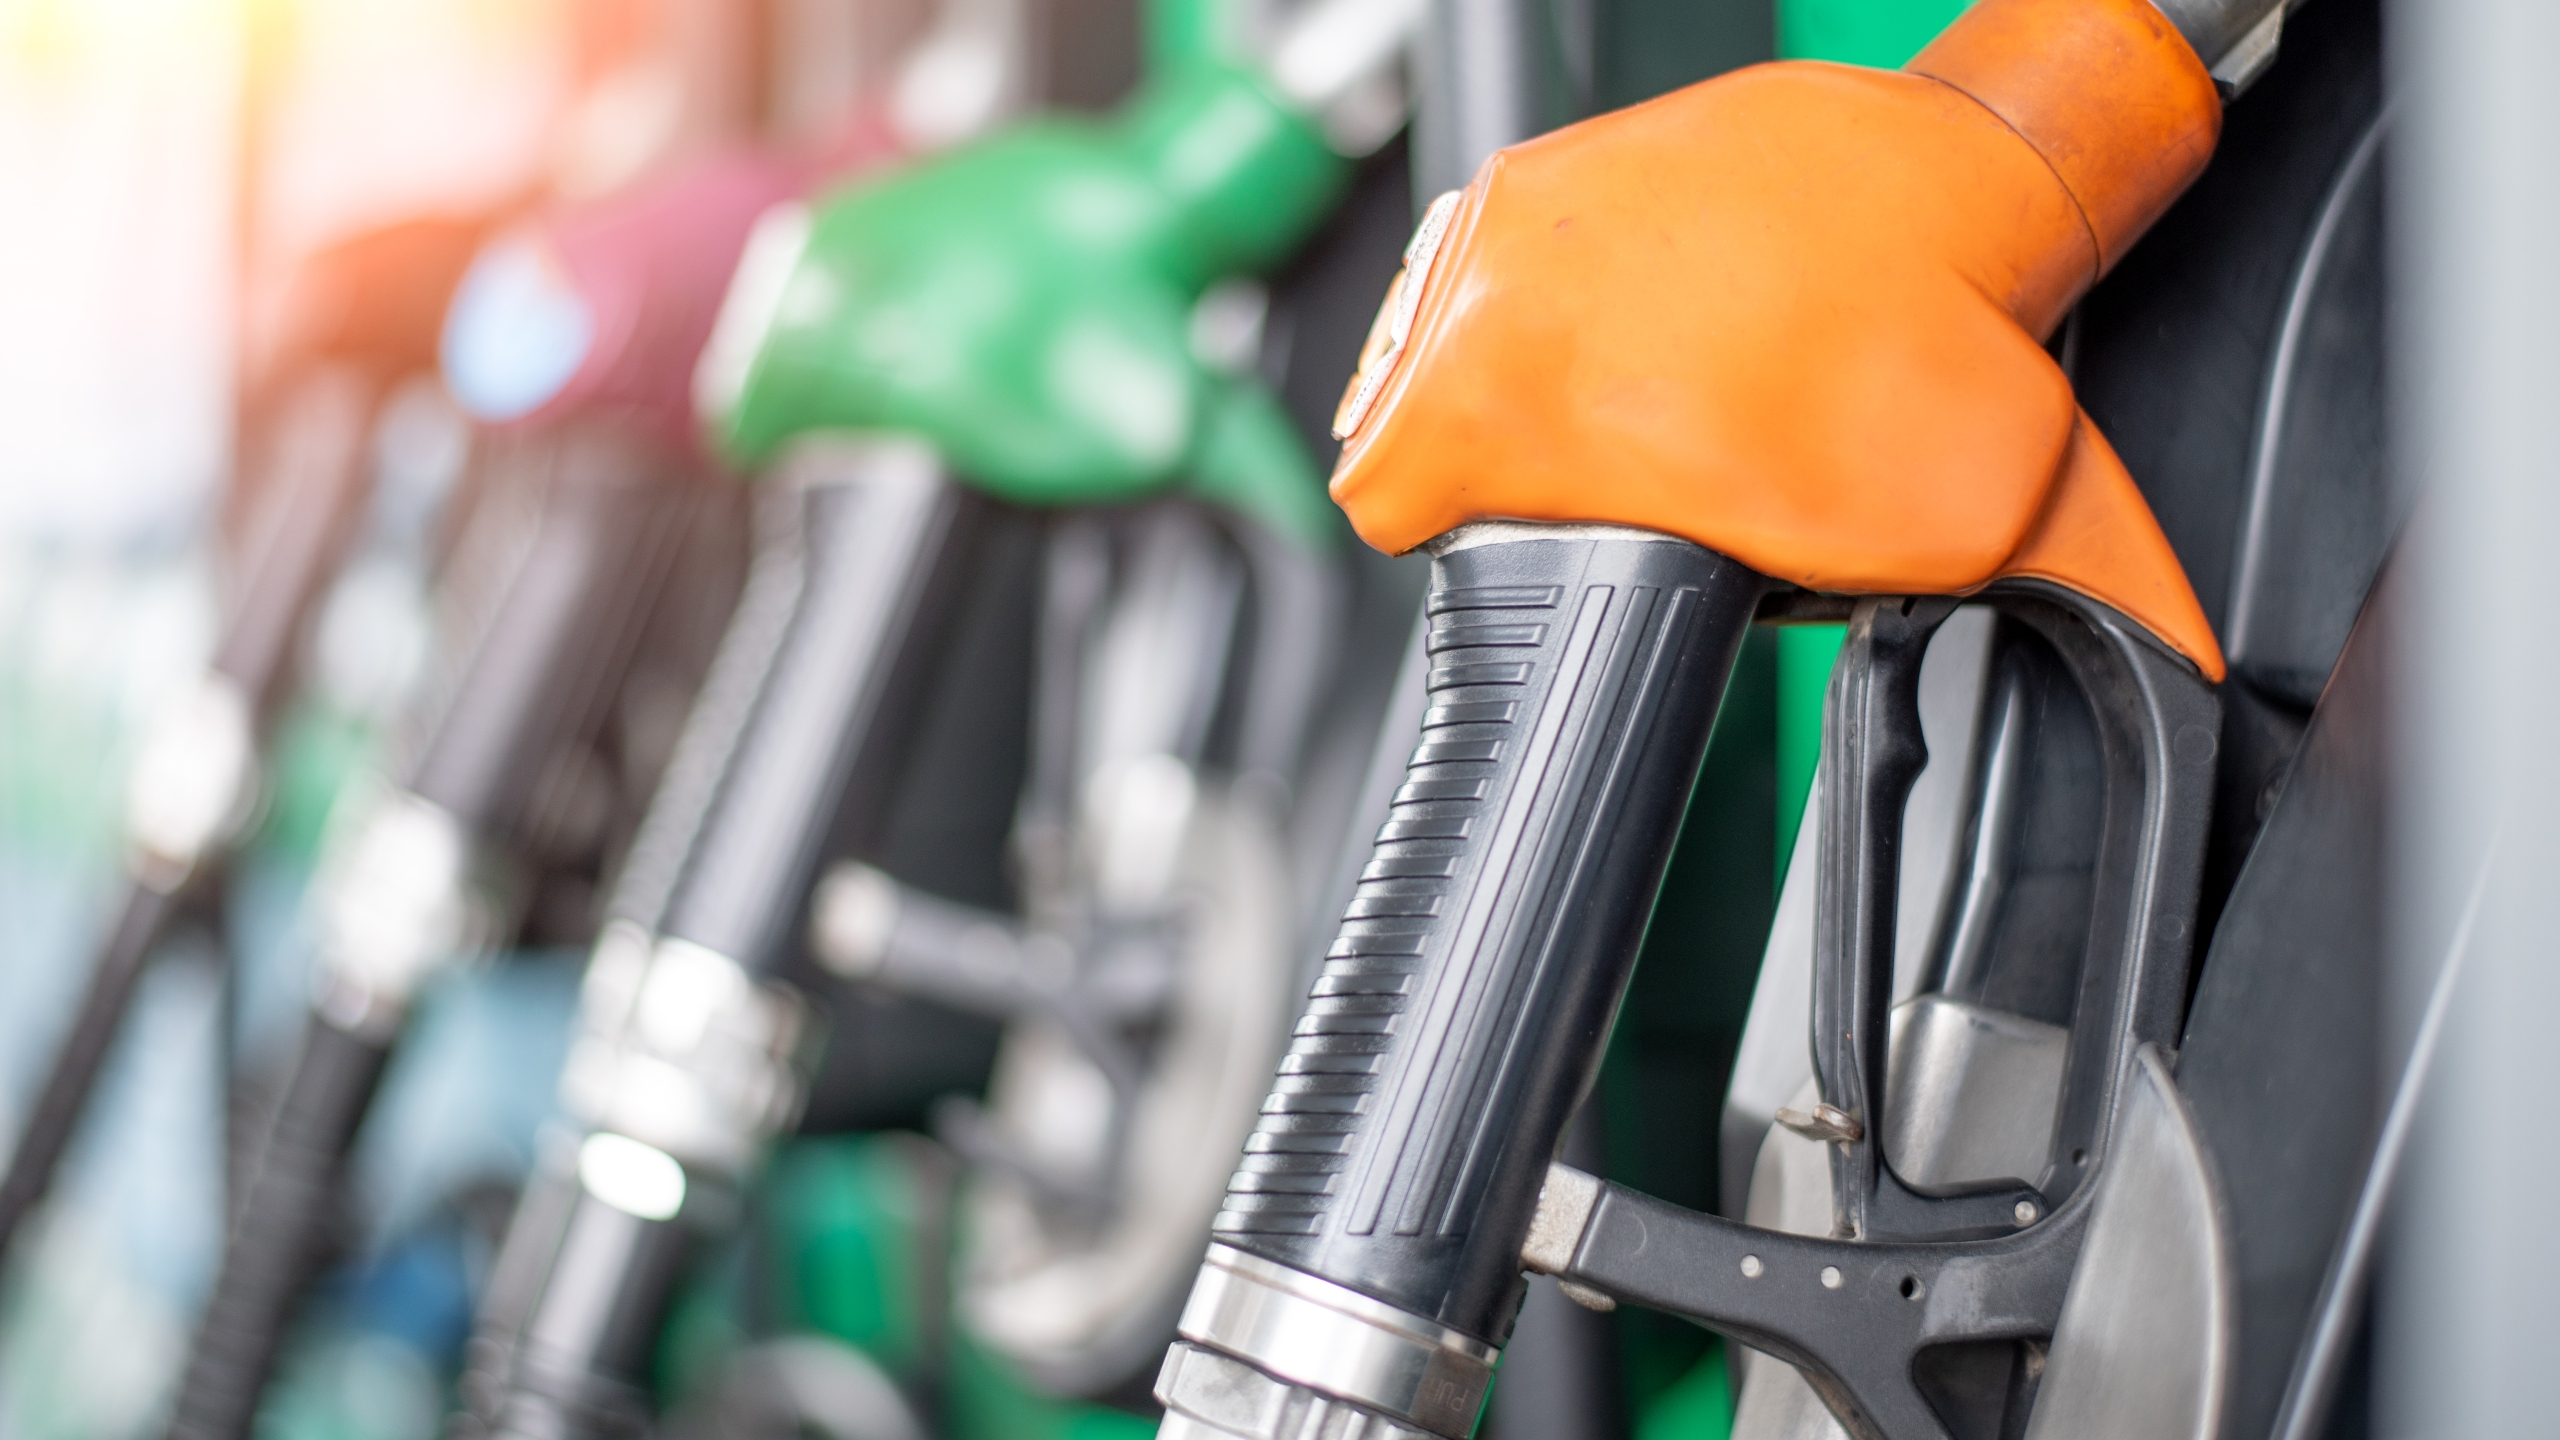 Pumping equipment at gas station seen in this file photo. (Getty Images)